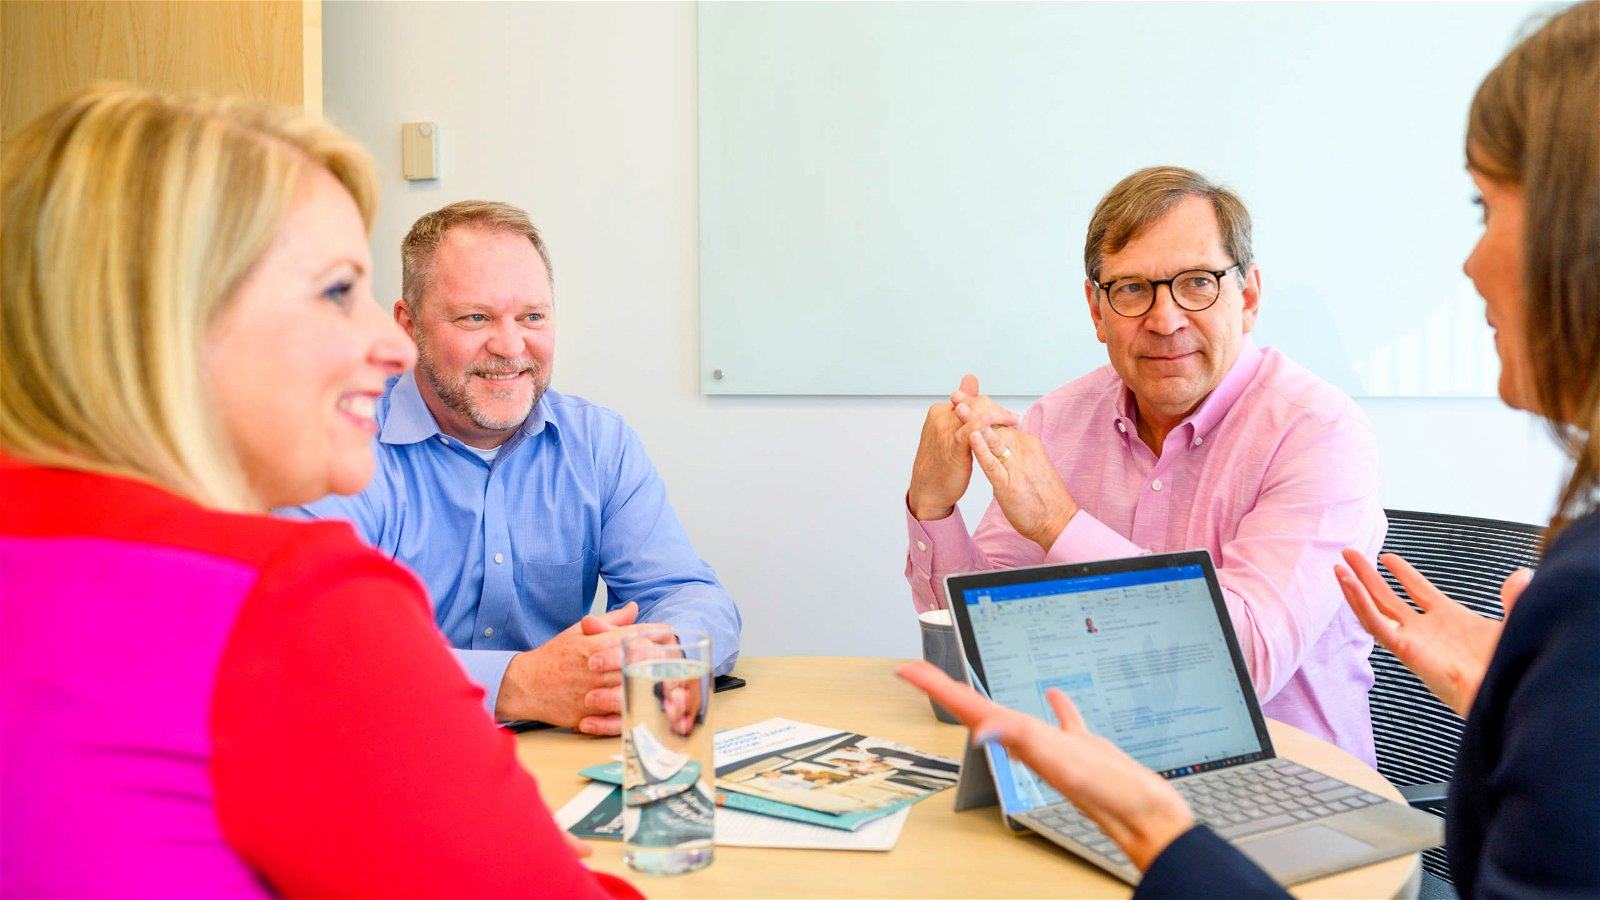 Business leaders sit around table in bright room